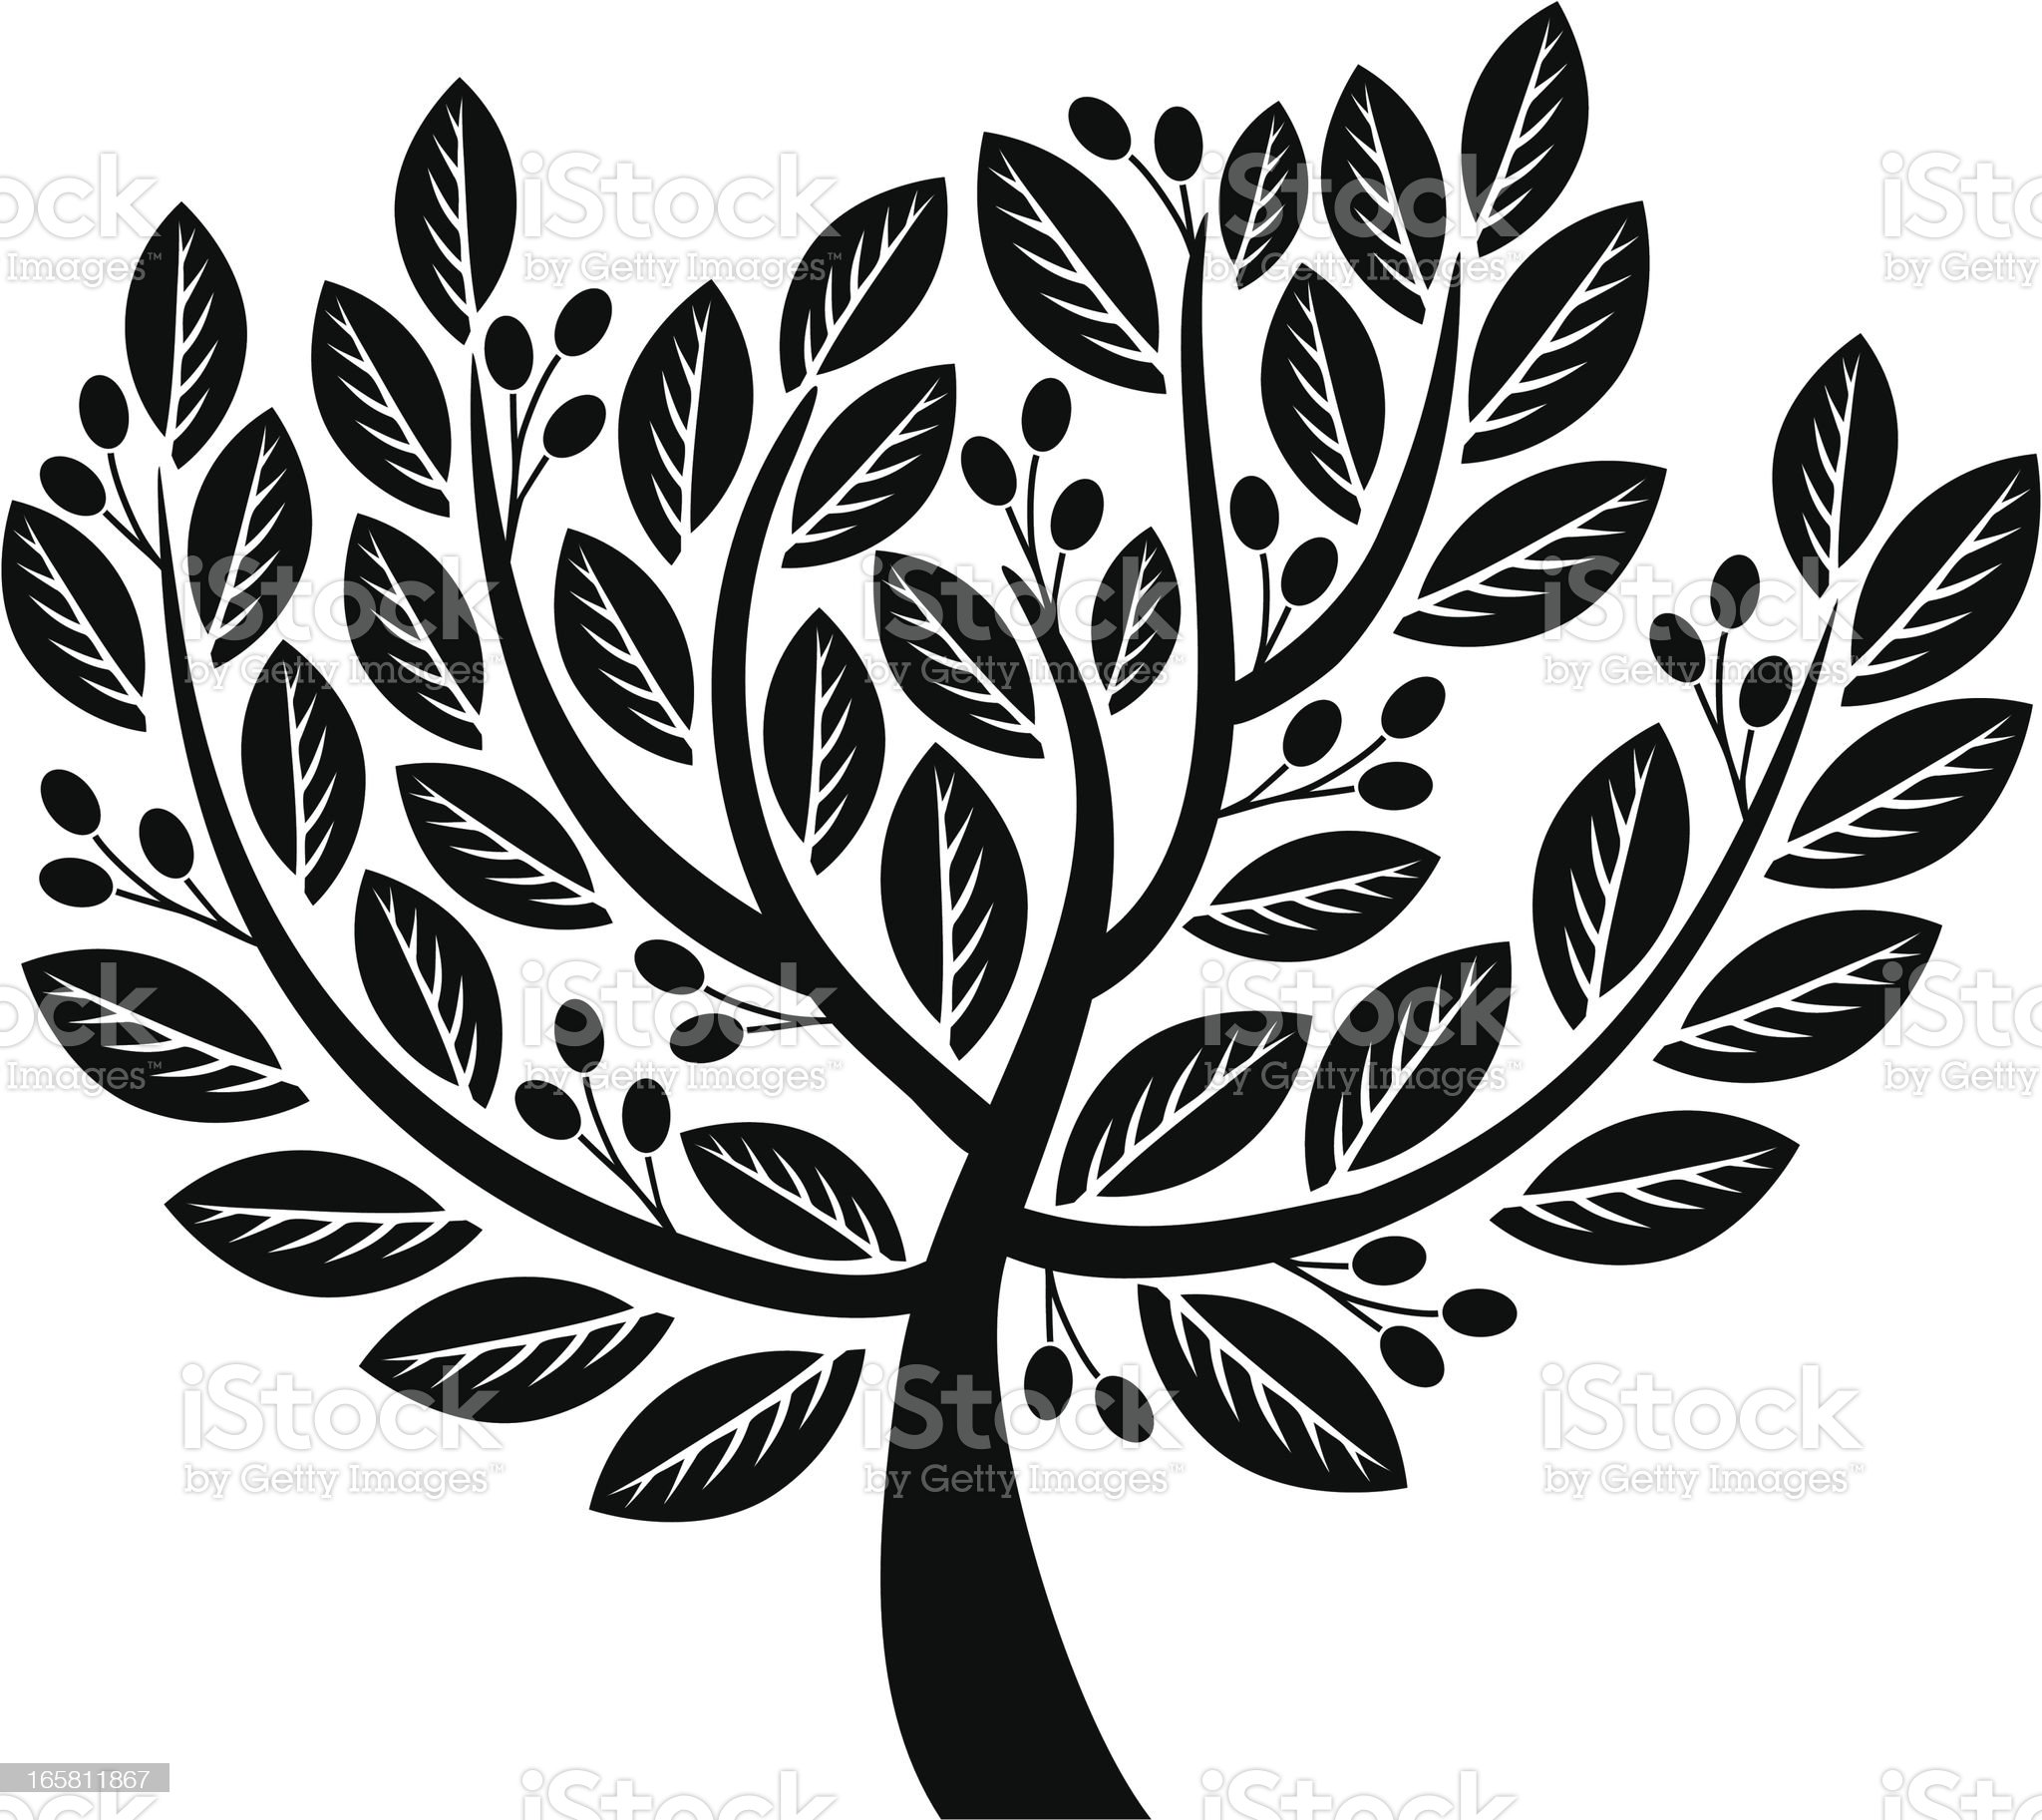 Olive royalty-free stock vector art